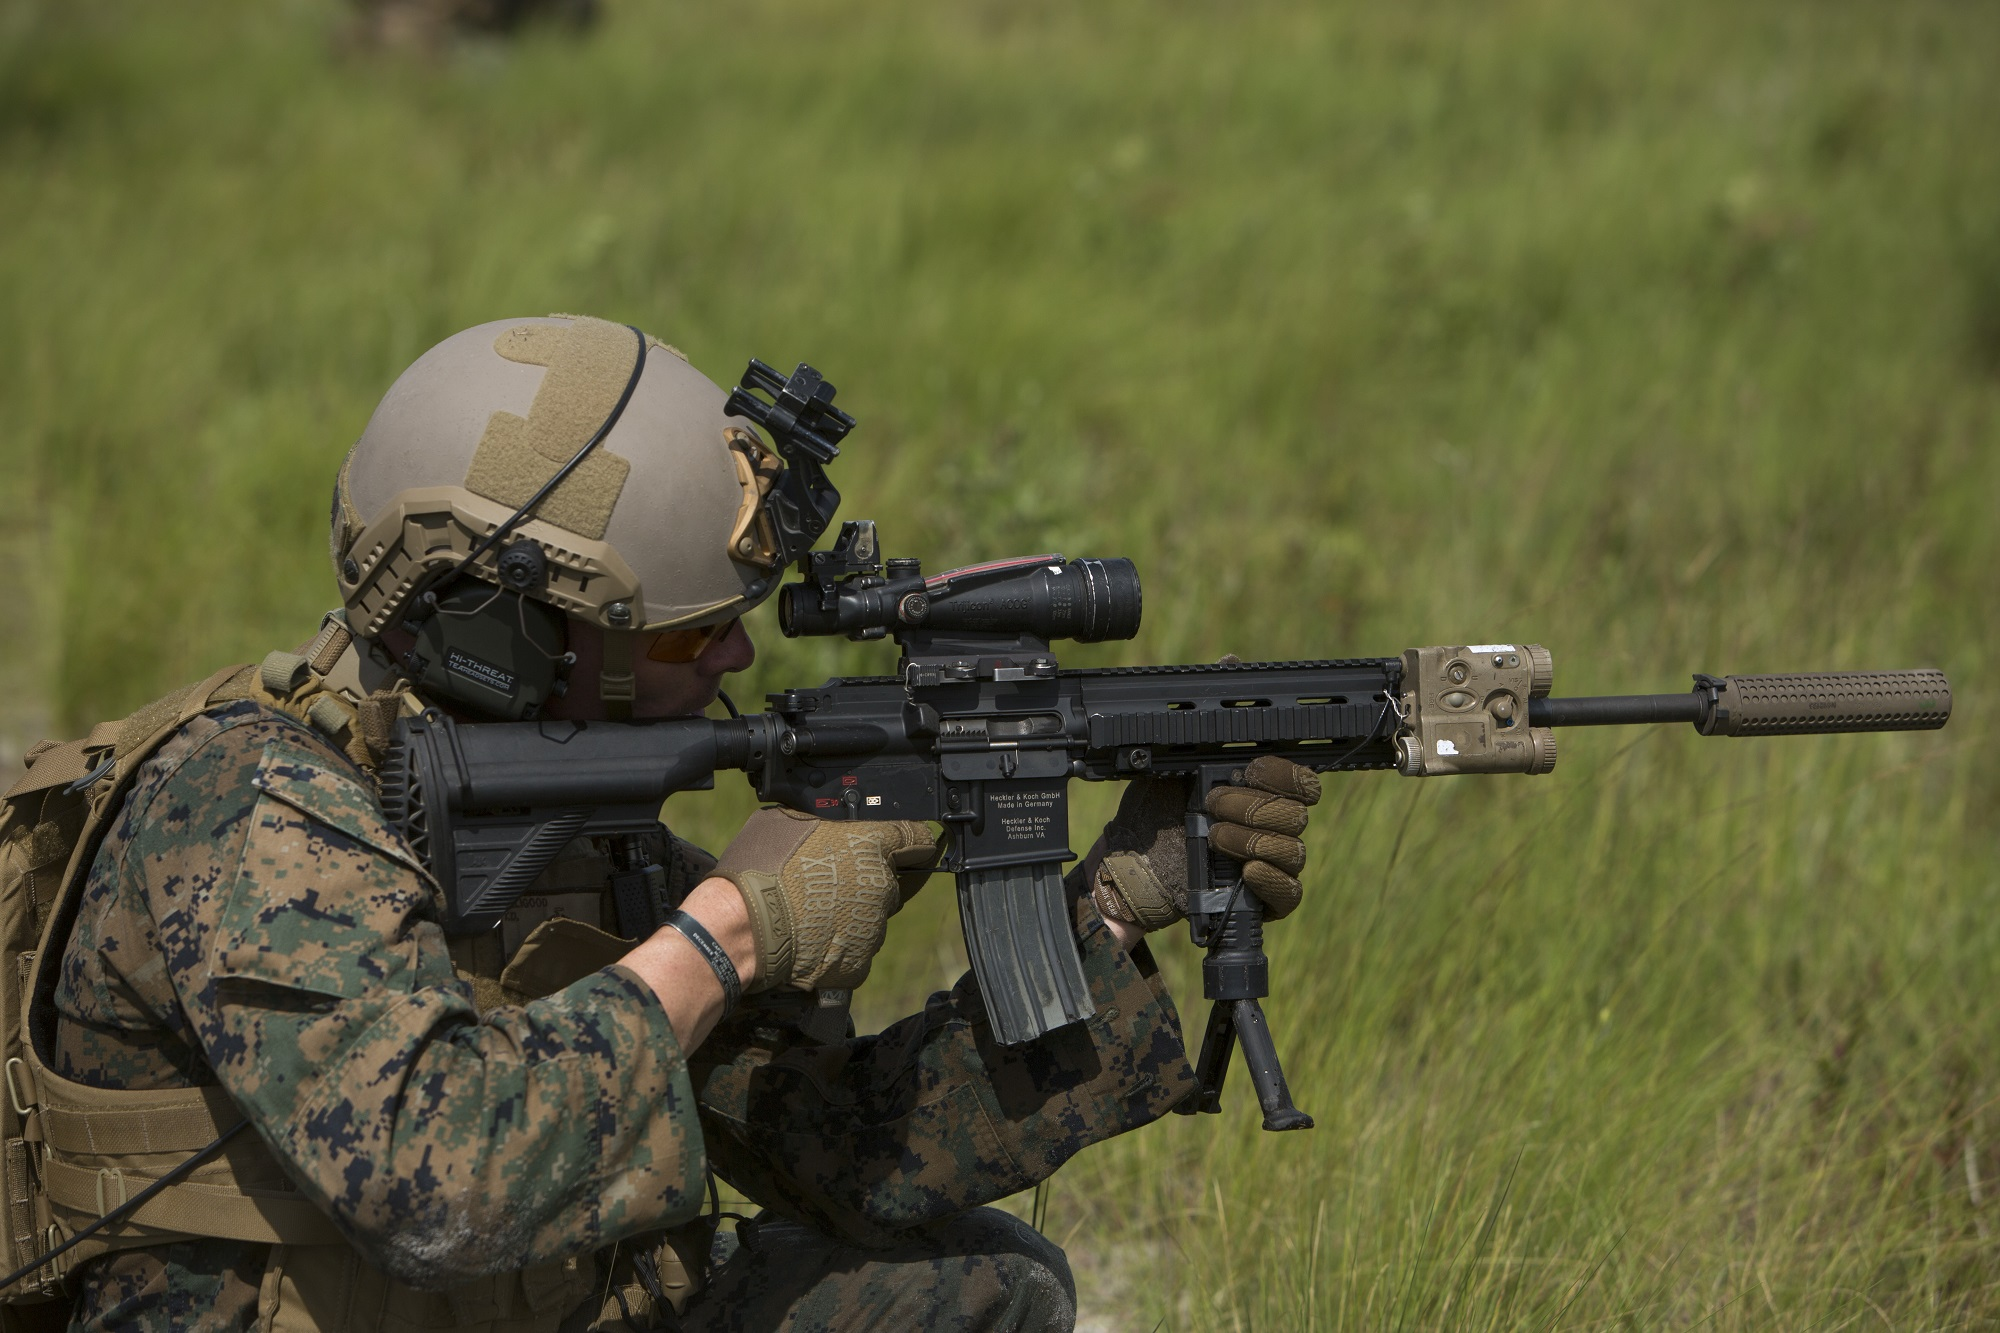 Modernizing infantry Marines: Big changes coming as grunts take on more special ops-style missions